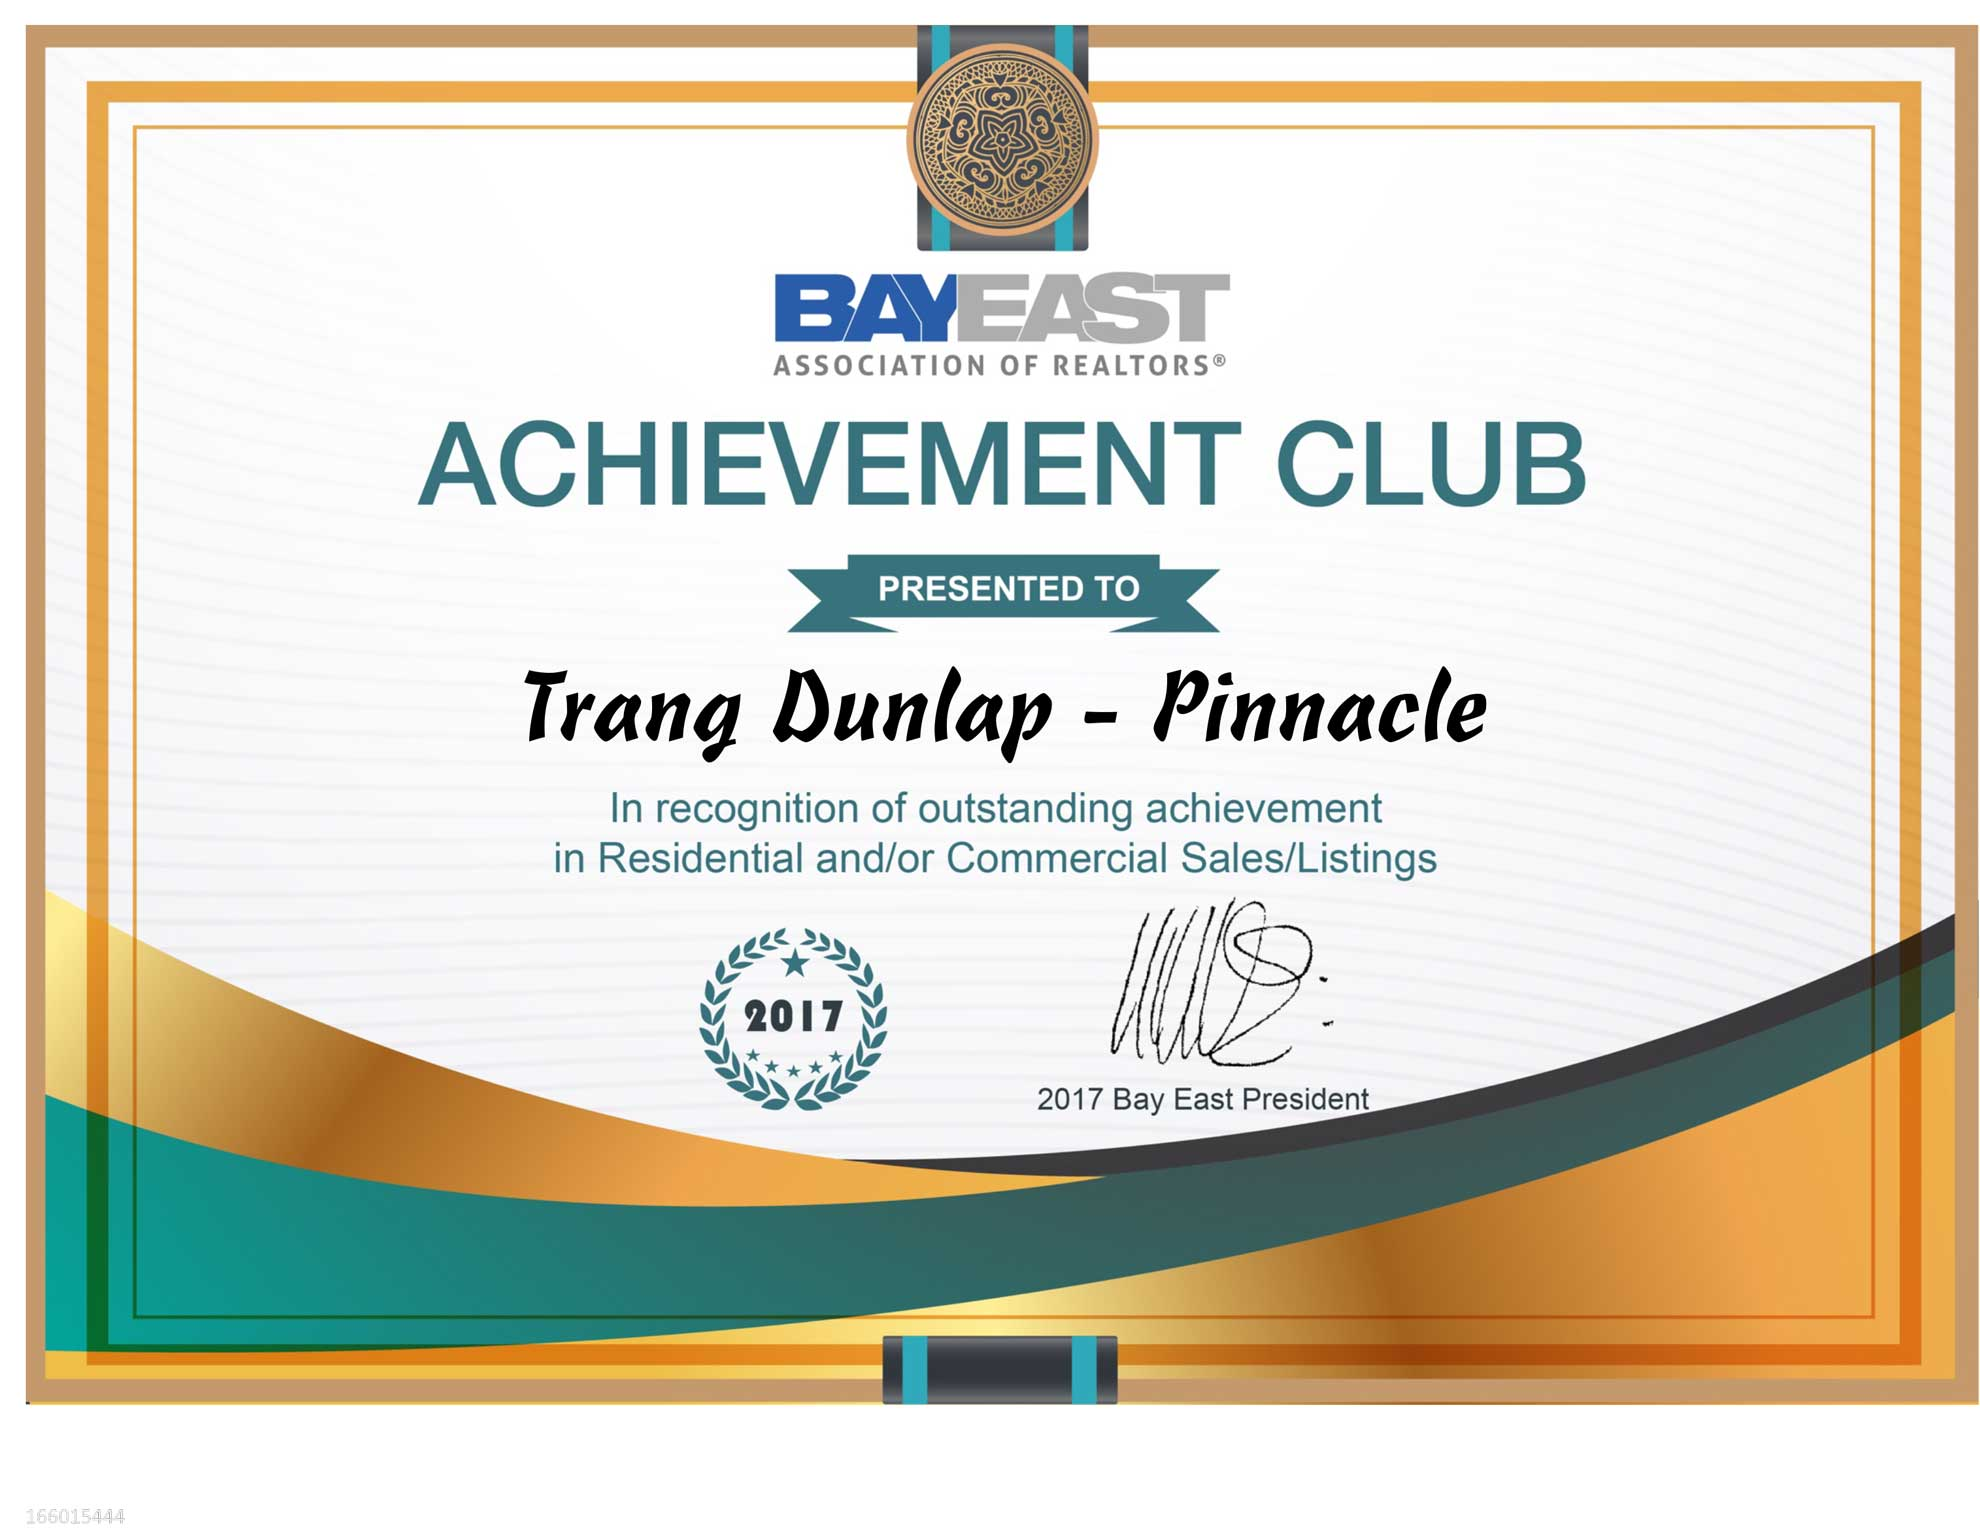 2017 trang dunlap bayeast realtor pinnacle award for selling over 20 million dollars in sales